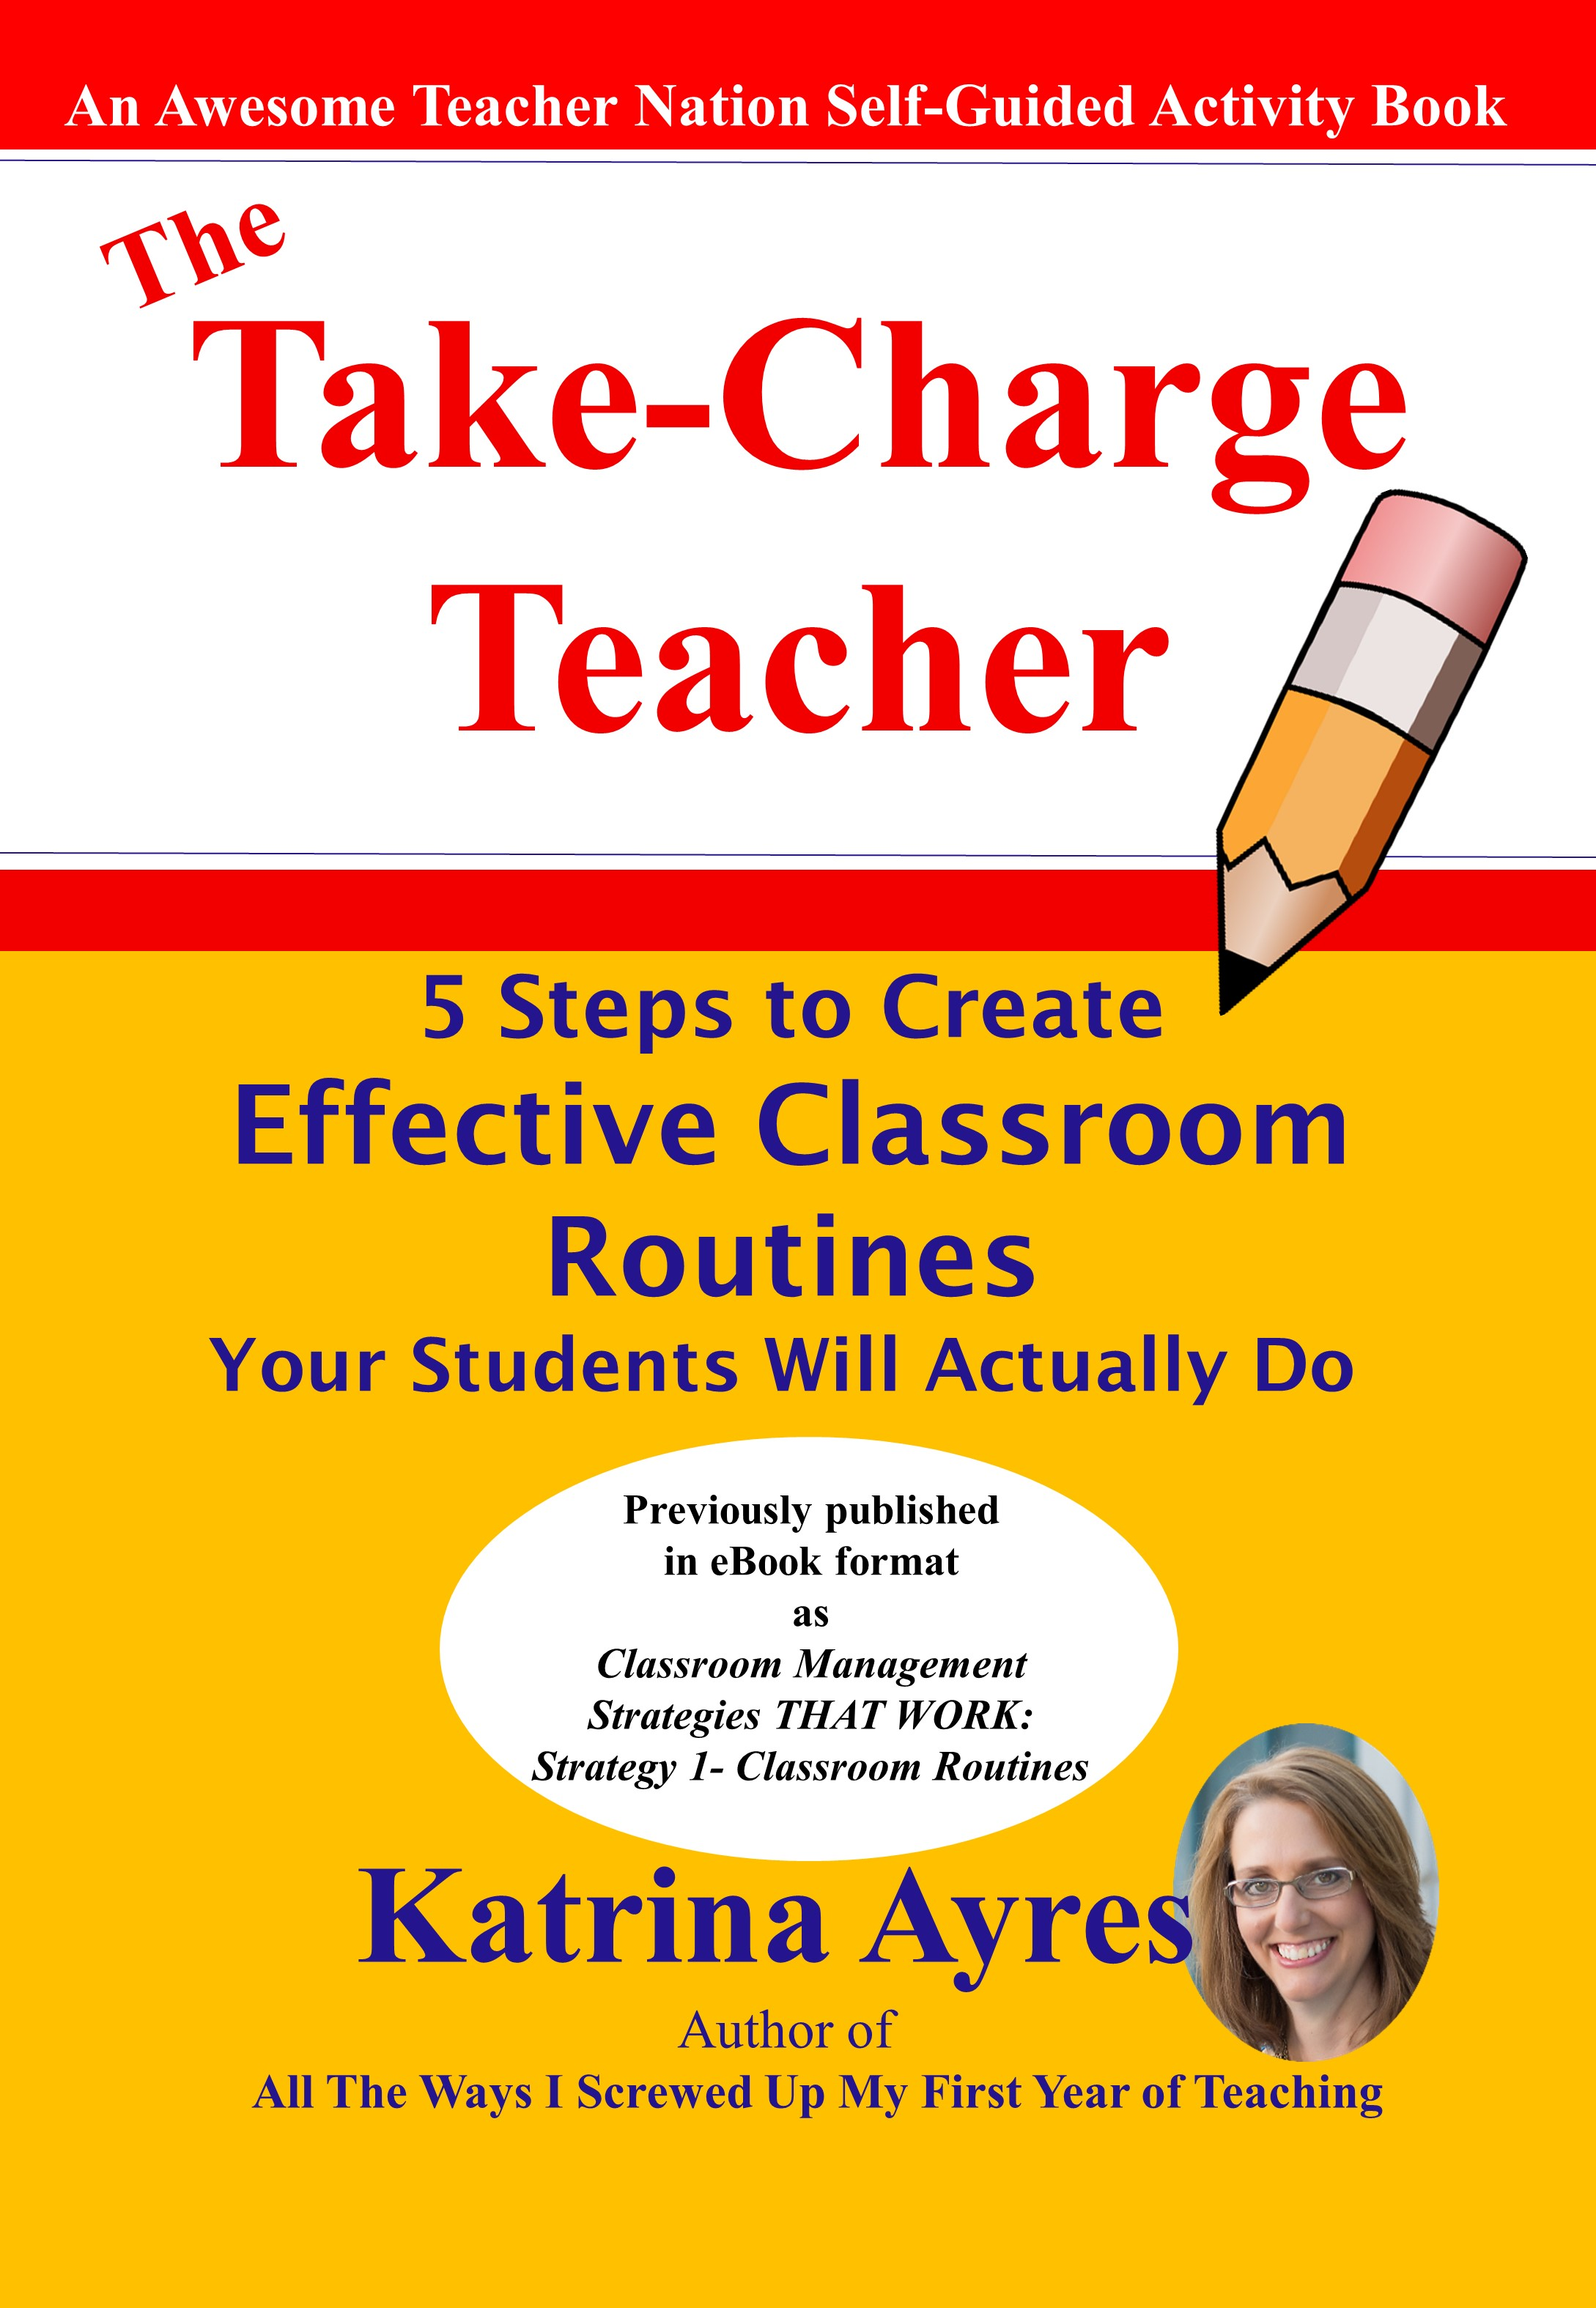 The Take-Charge Teacher by Katrina Ayres